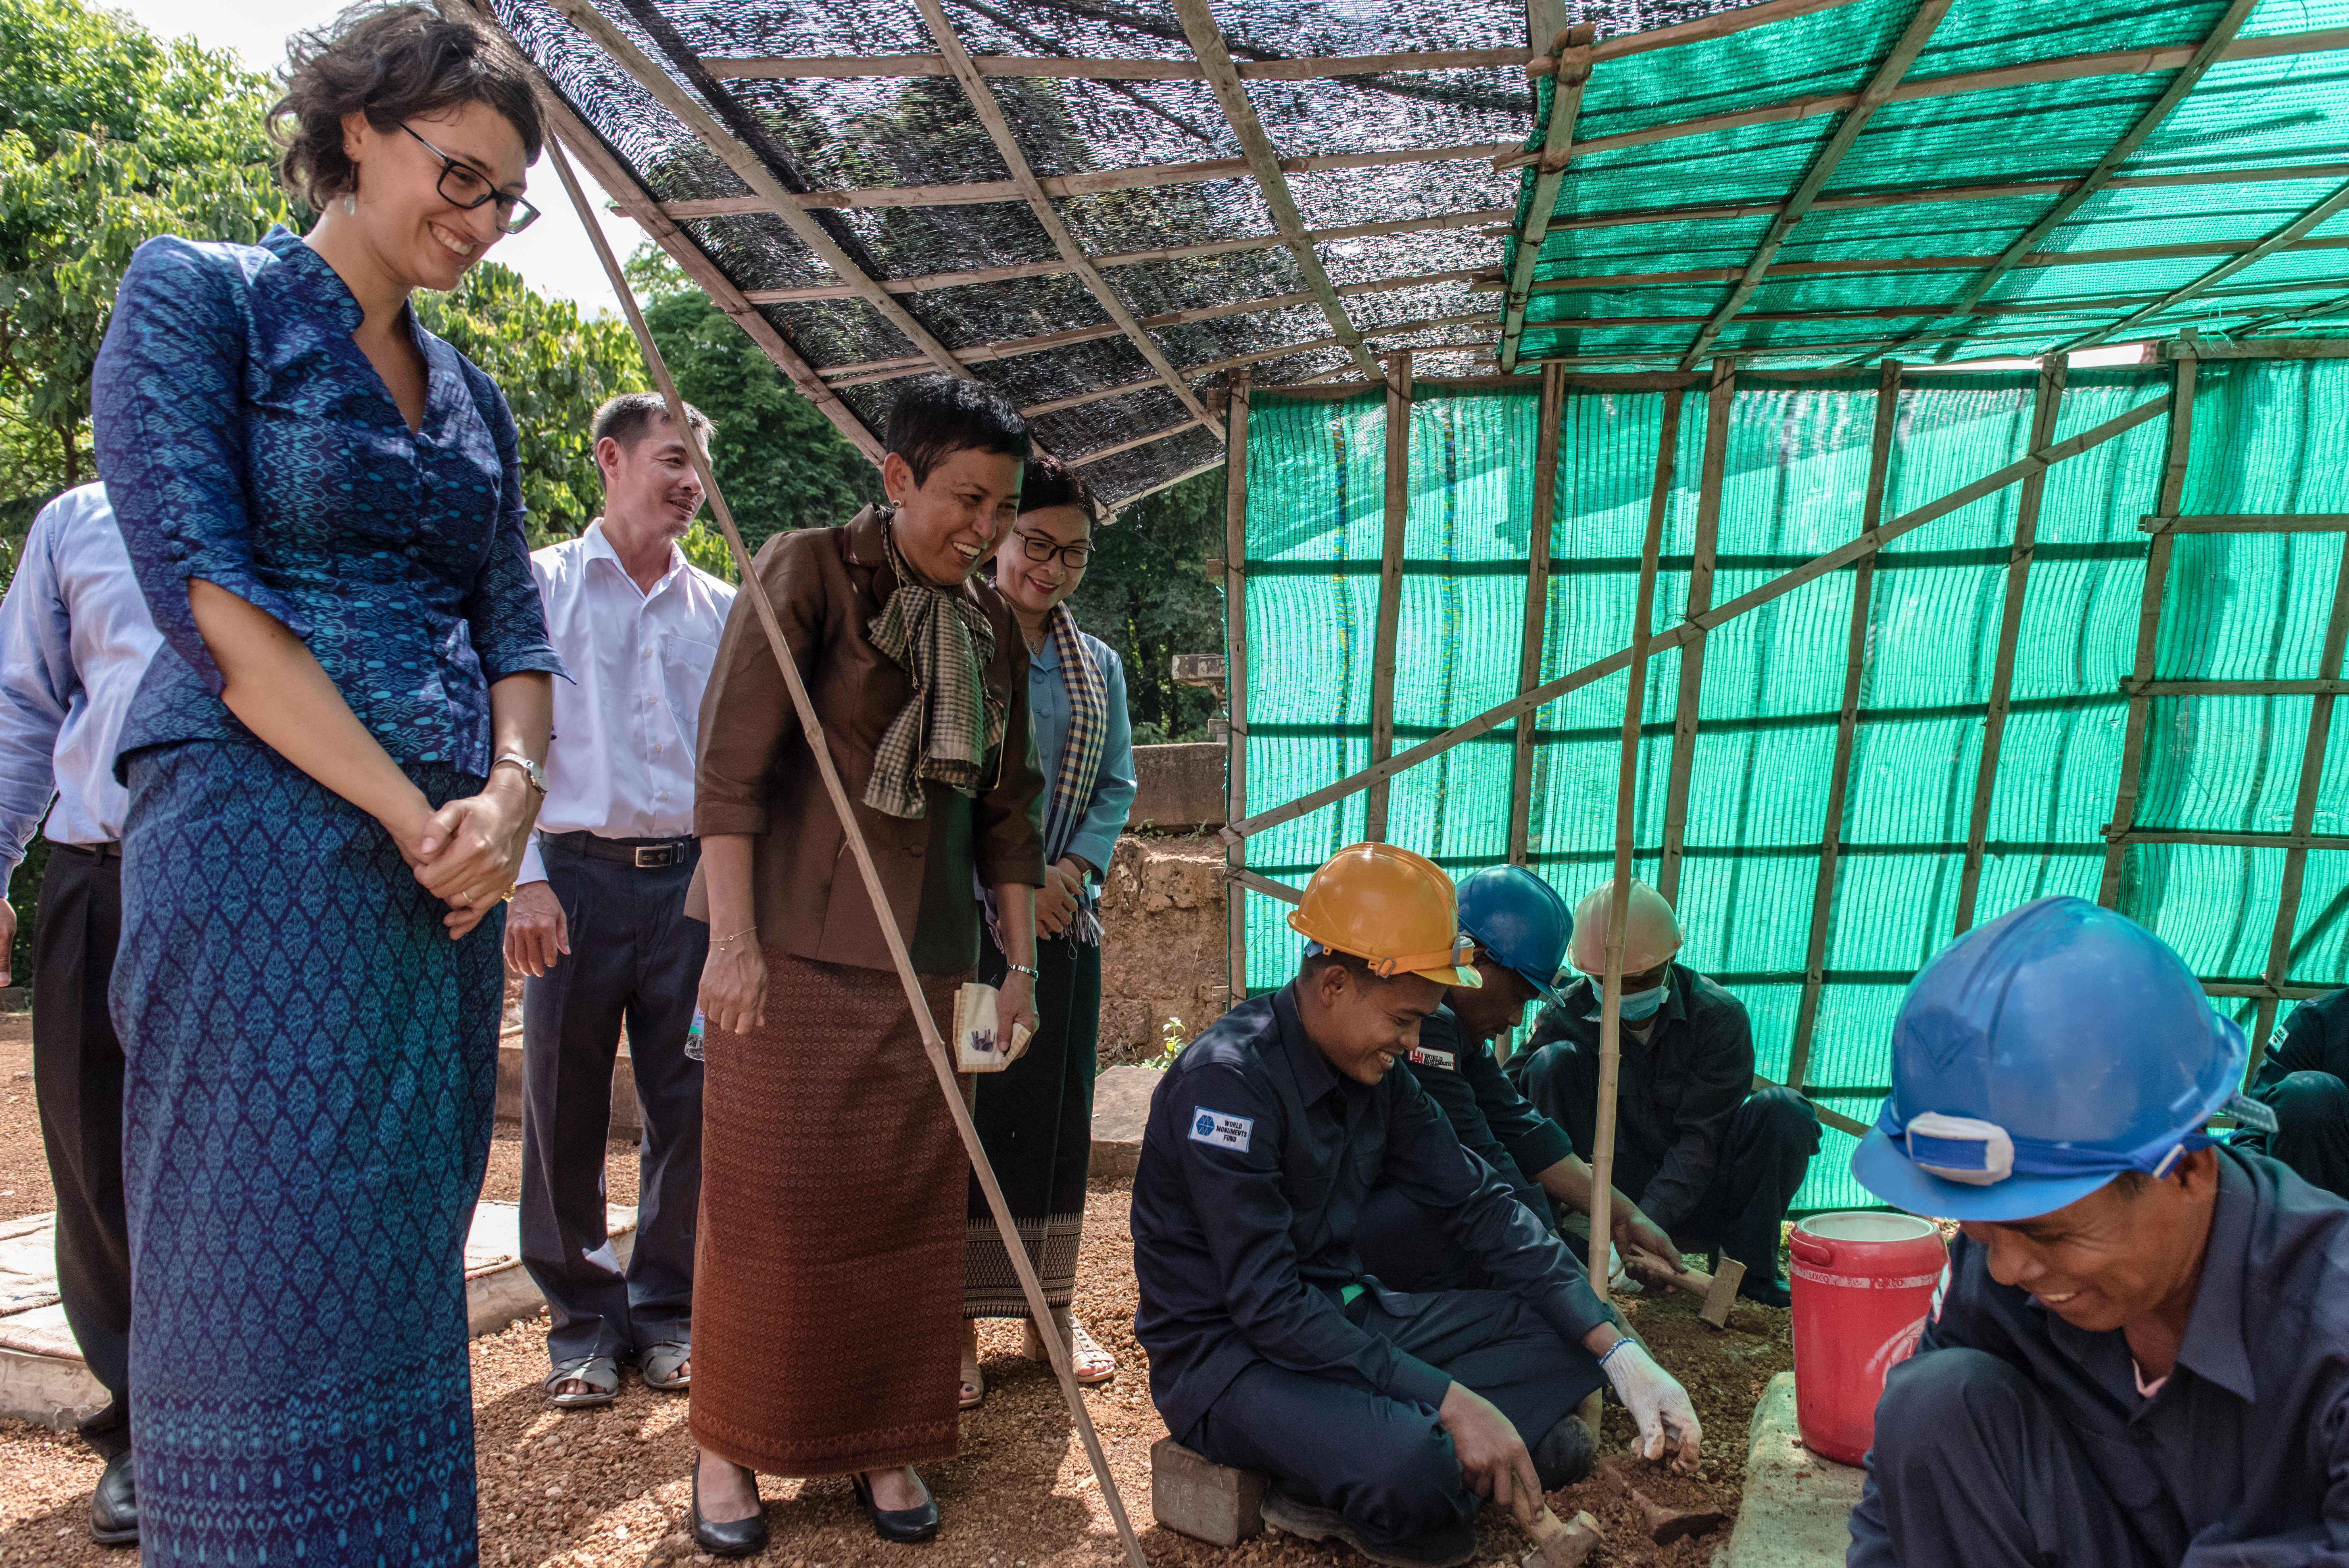 WMF's Ginevra Boatto and Her Excellency Dr. Phoeurng Sackona observe conservation work. Photo by Amine Birdouz.